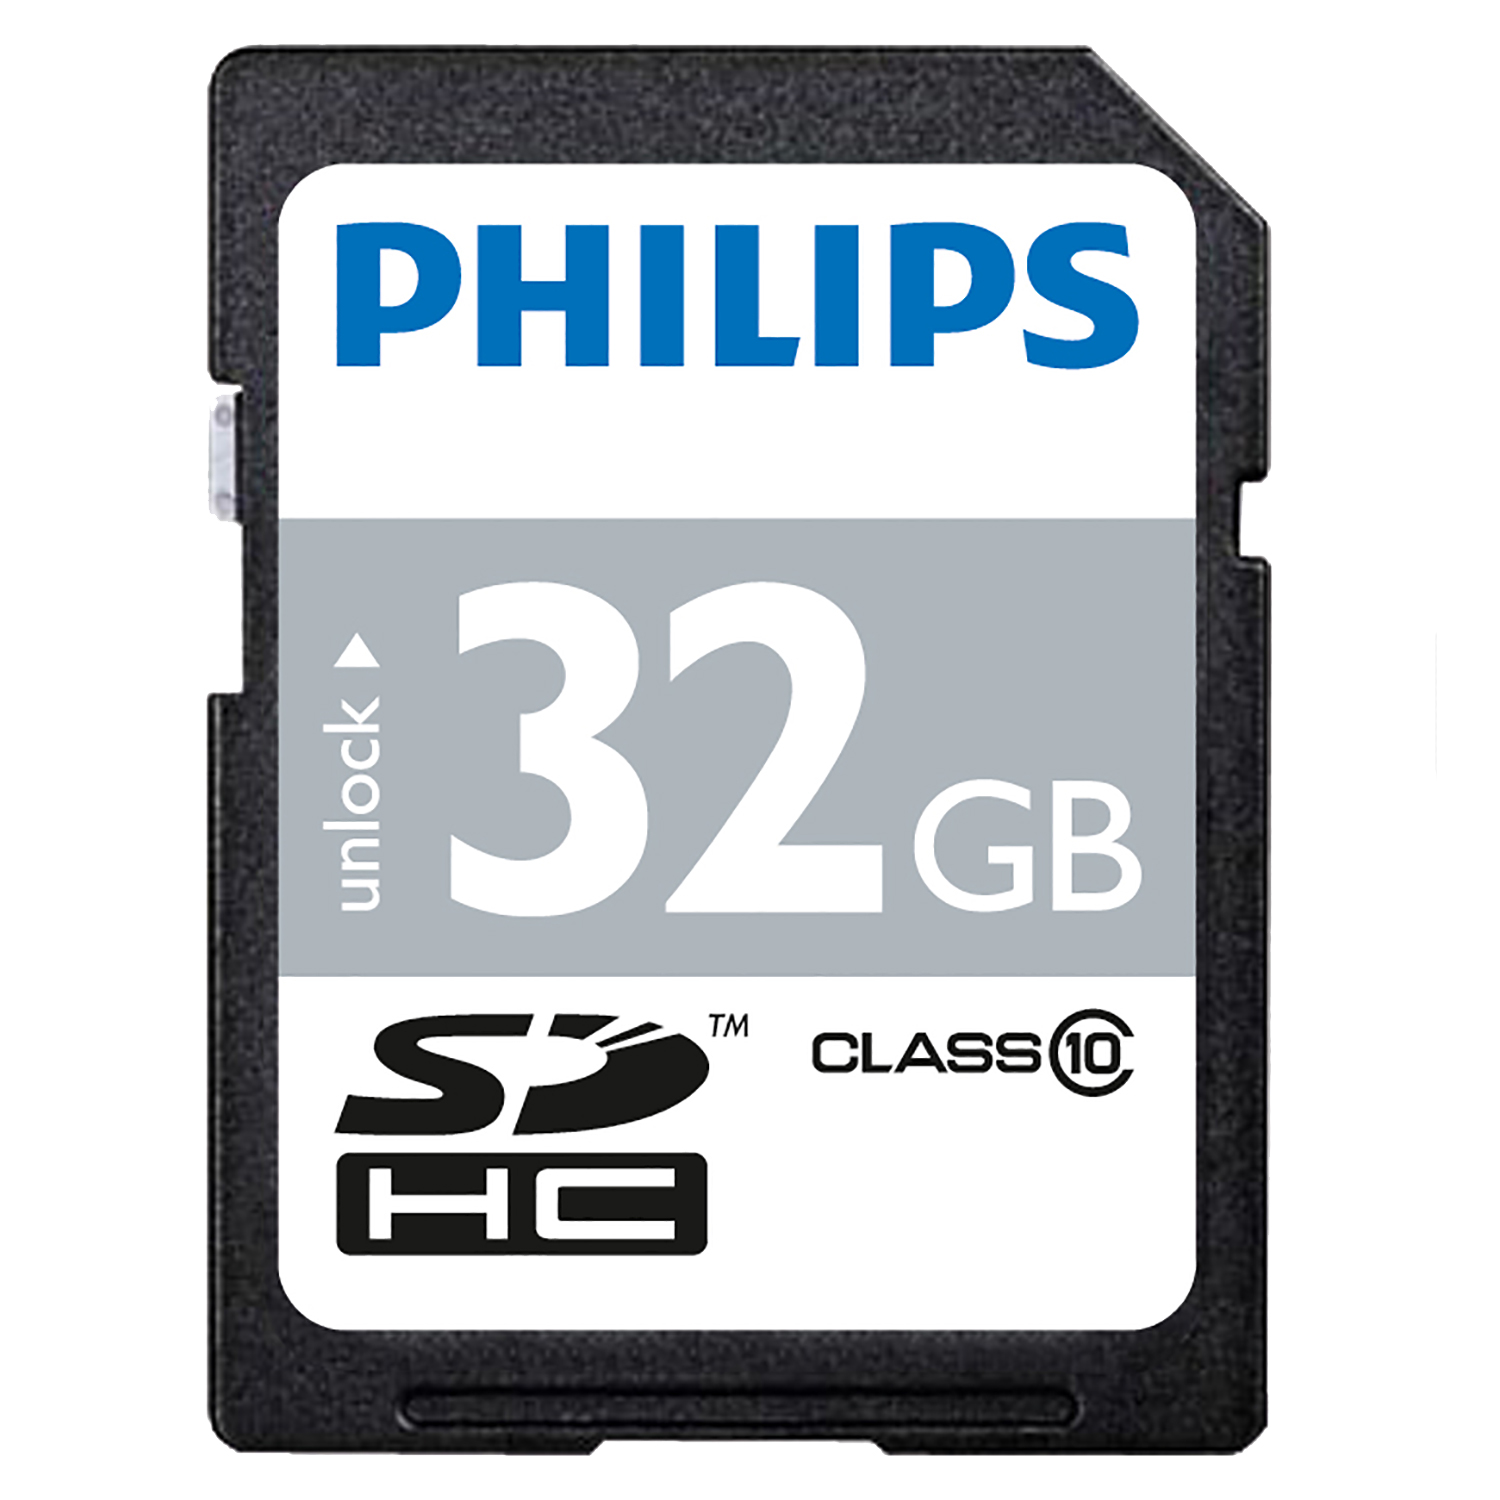 brand new 32gb philips sd sdhc memory card class 10 32gb. Black Bedroom Furniture Sets. Home Design Ideas